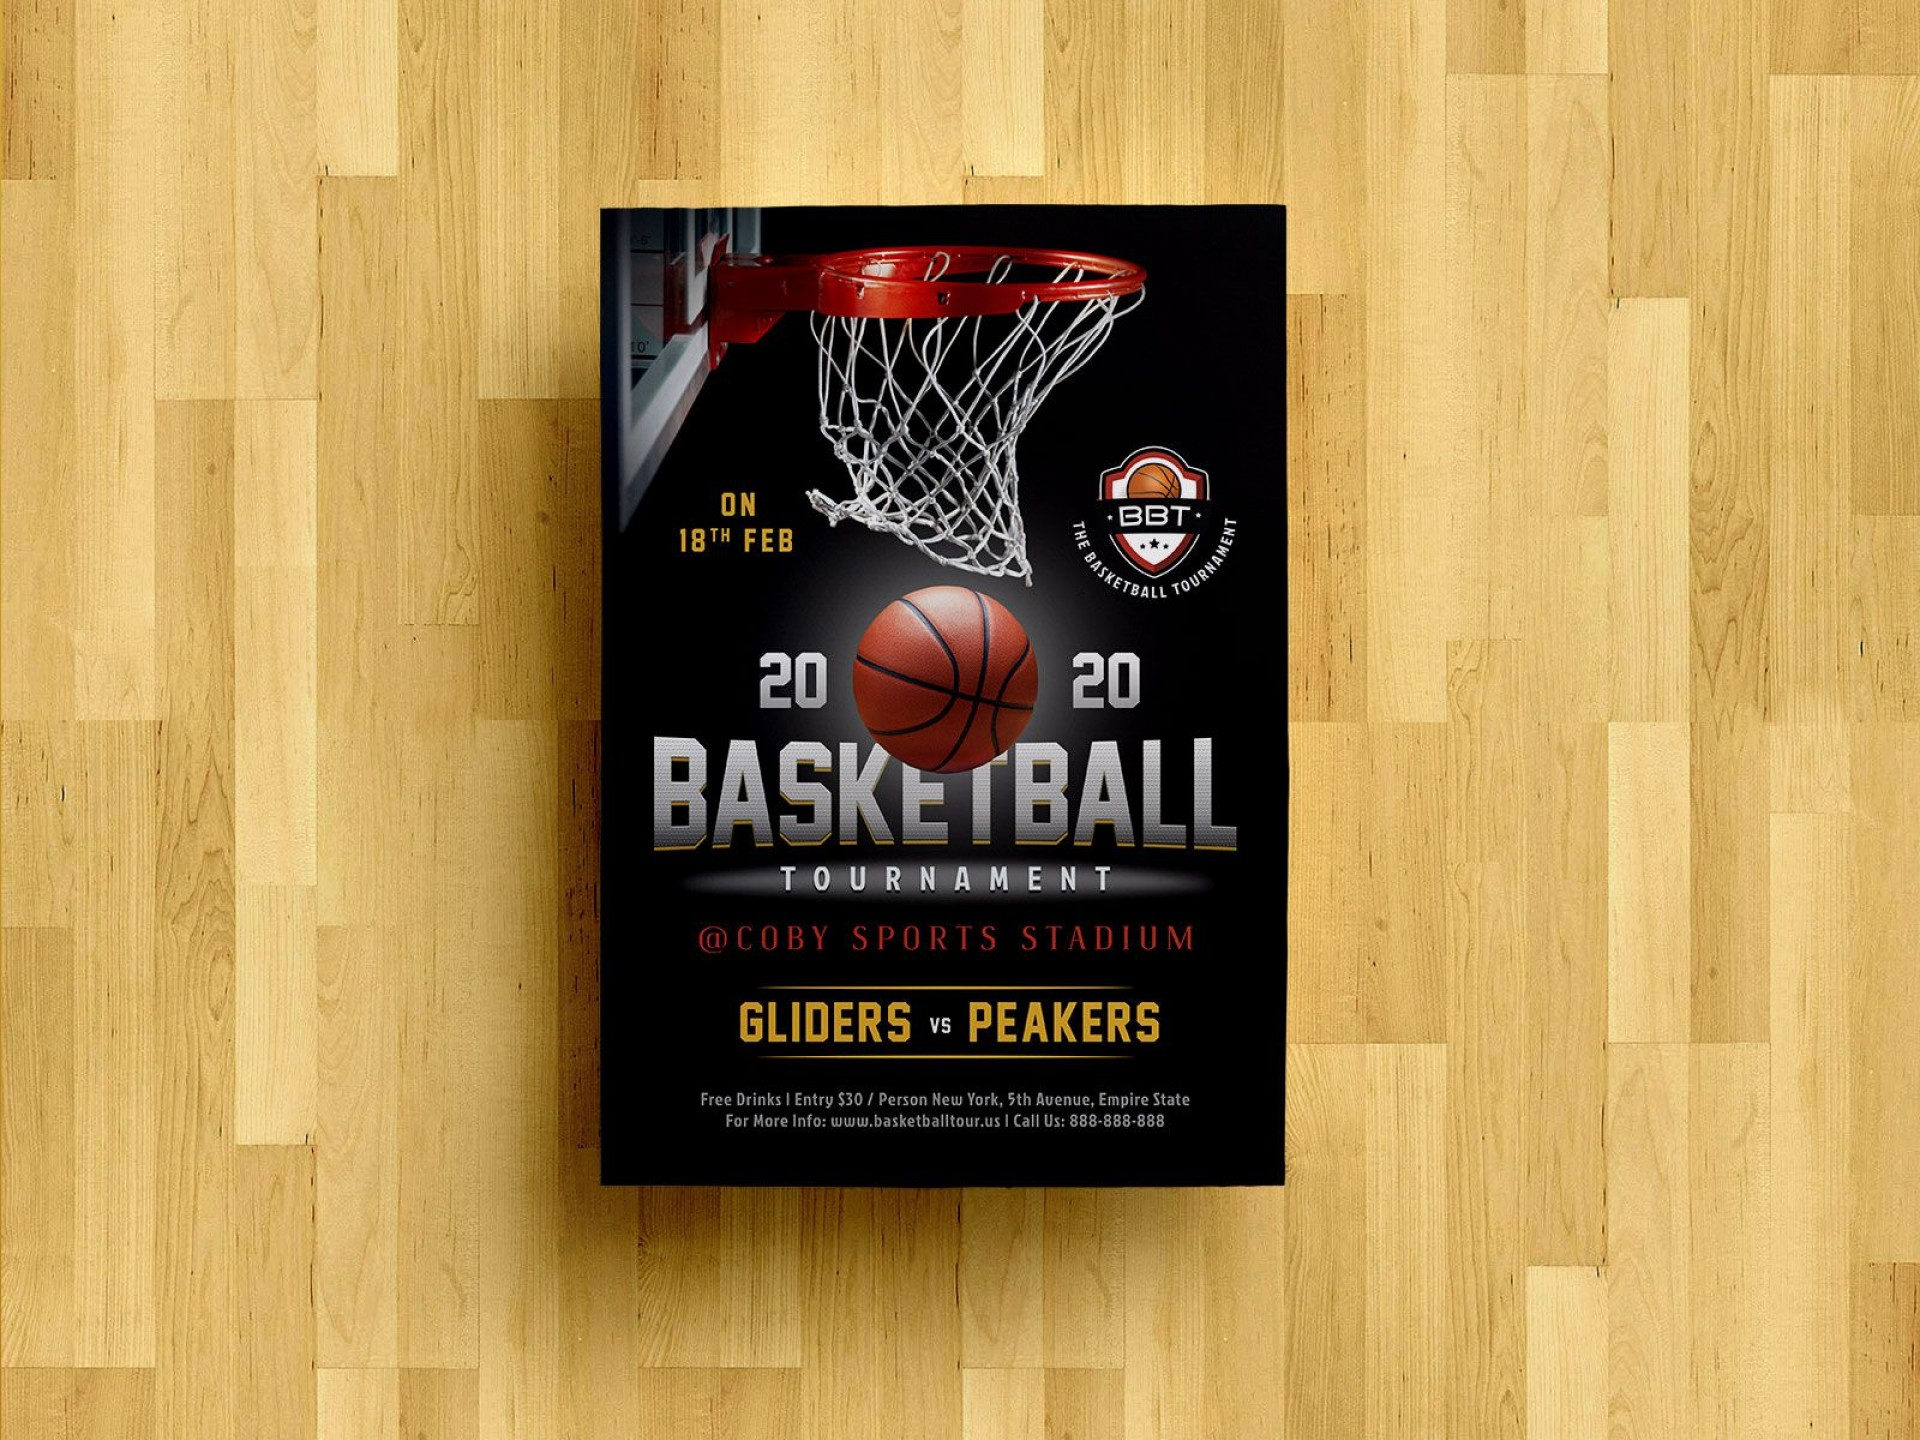 008 Dreaded Basketball Flyer Template Free Image  Brochure Tryout Camp1920